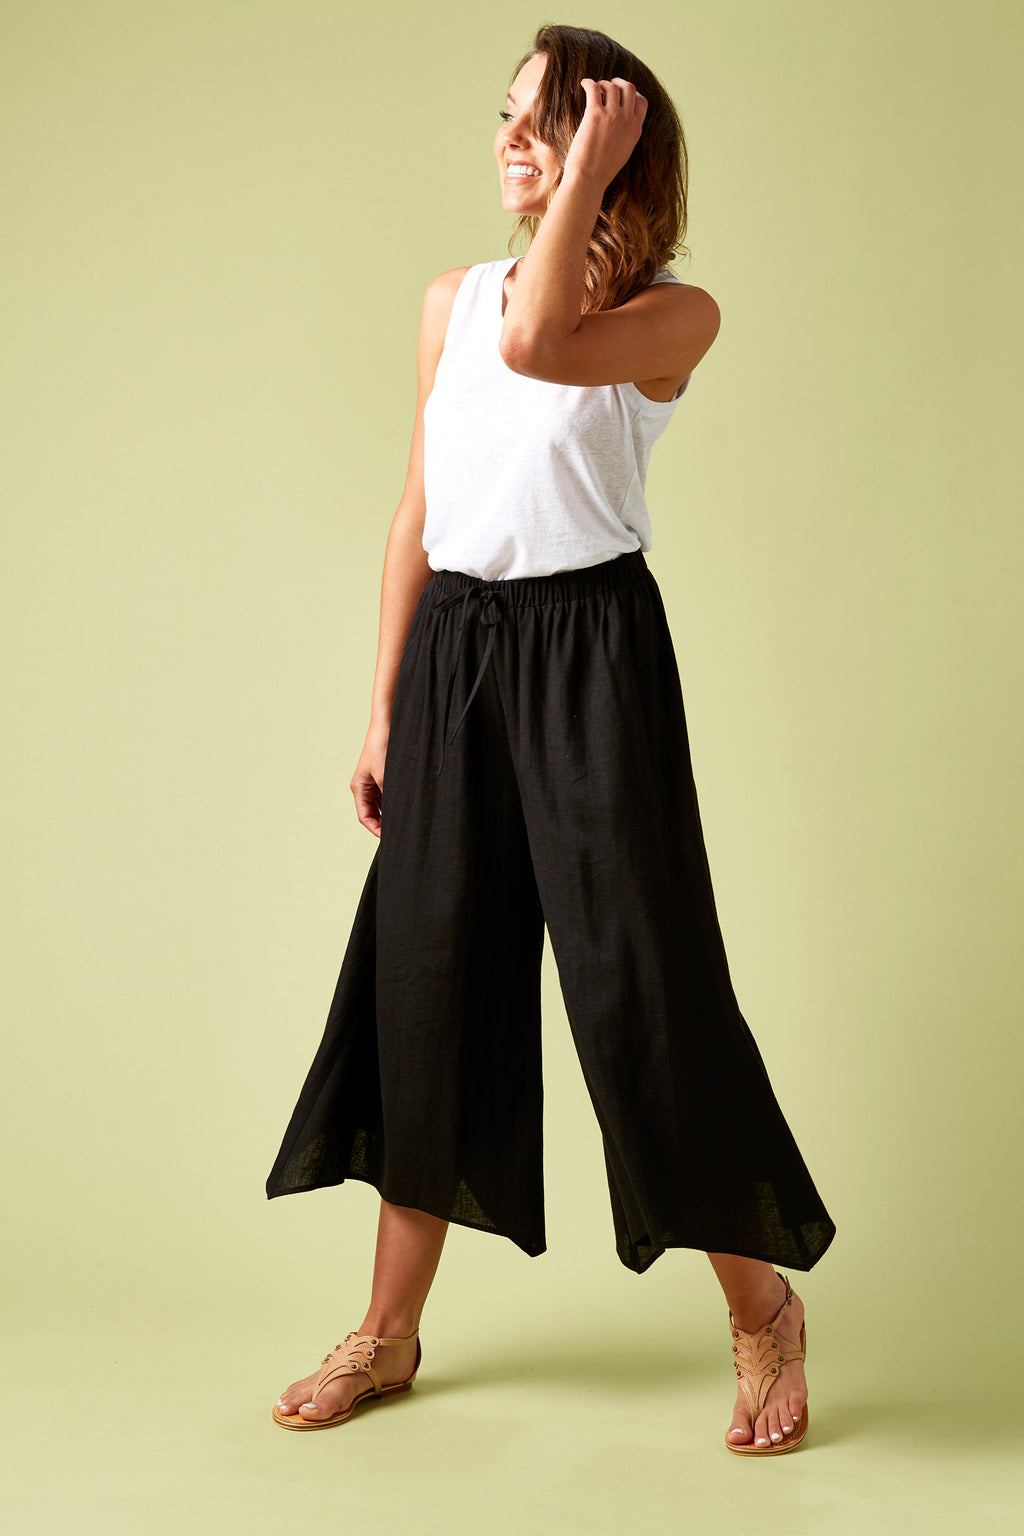 The Hoxton Pant - Black - Isle of Mine Clothing - Pant Relaxed Linen